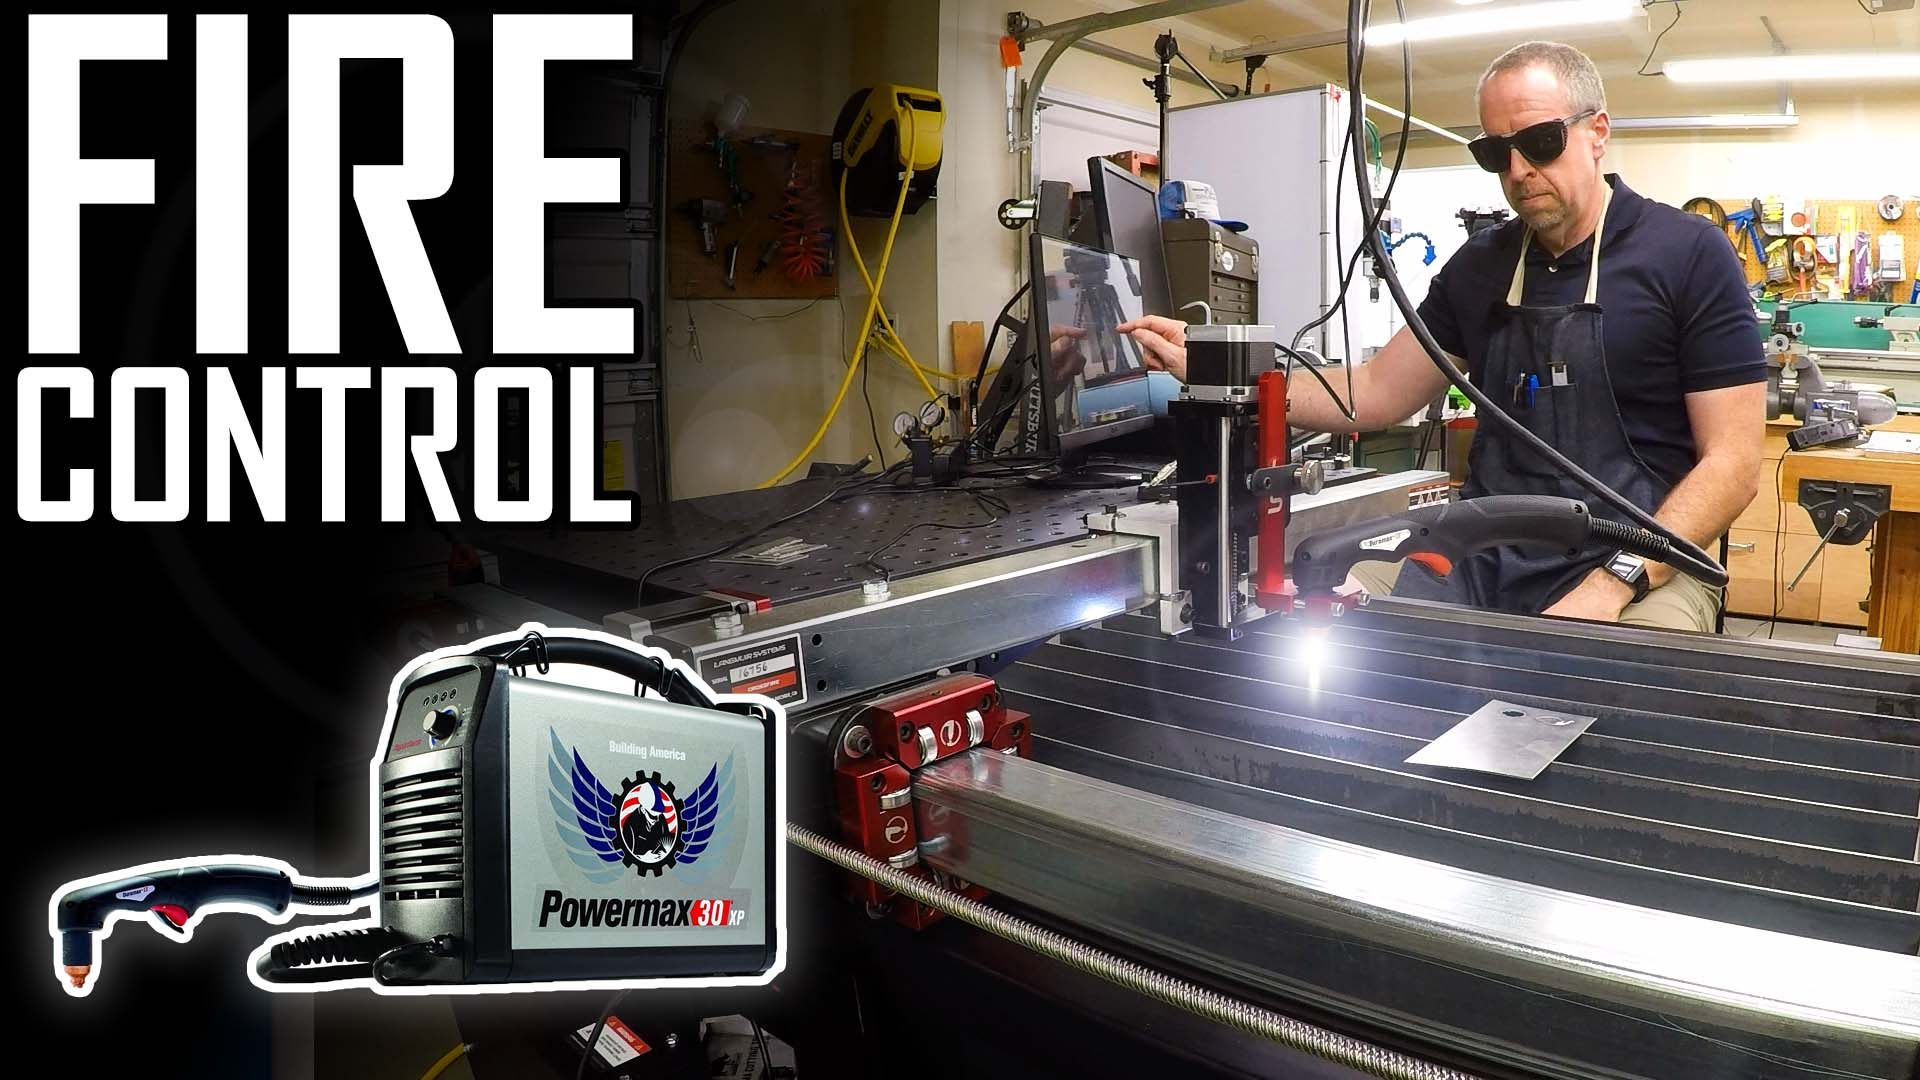 Don't try this at home: Wiring a plasma cutter for CNC   Hypertherm Powermax 30 XP